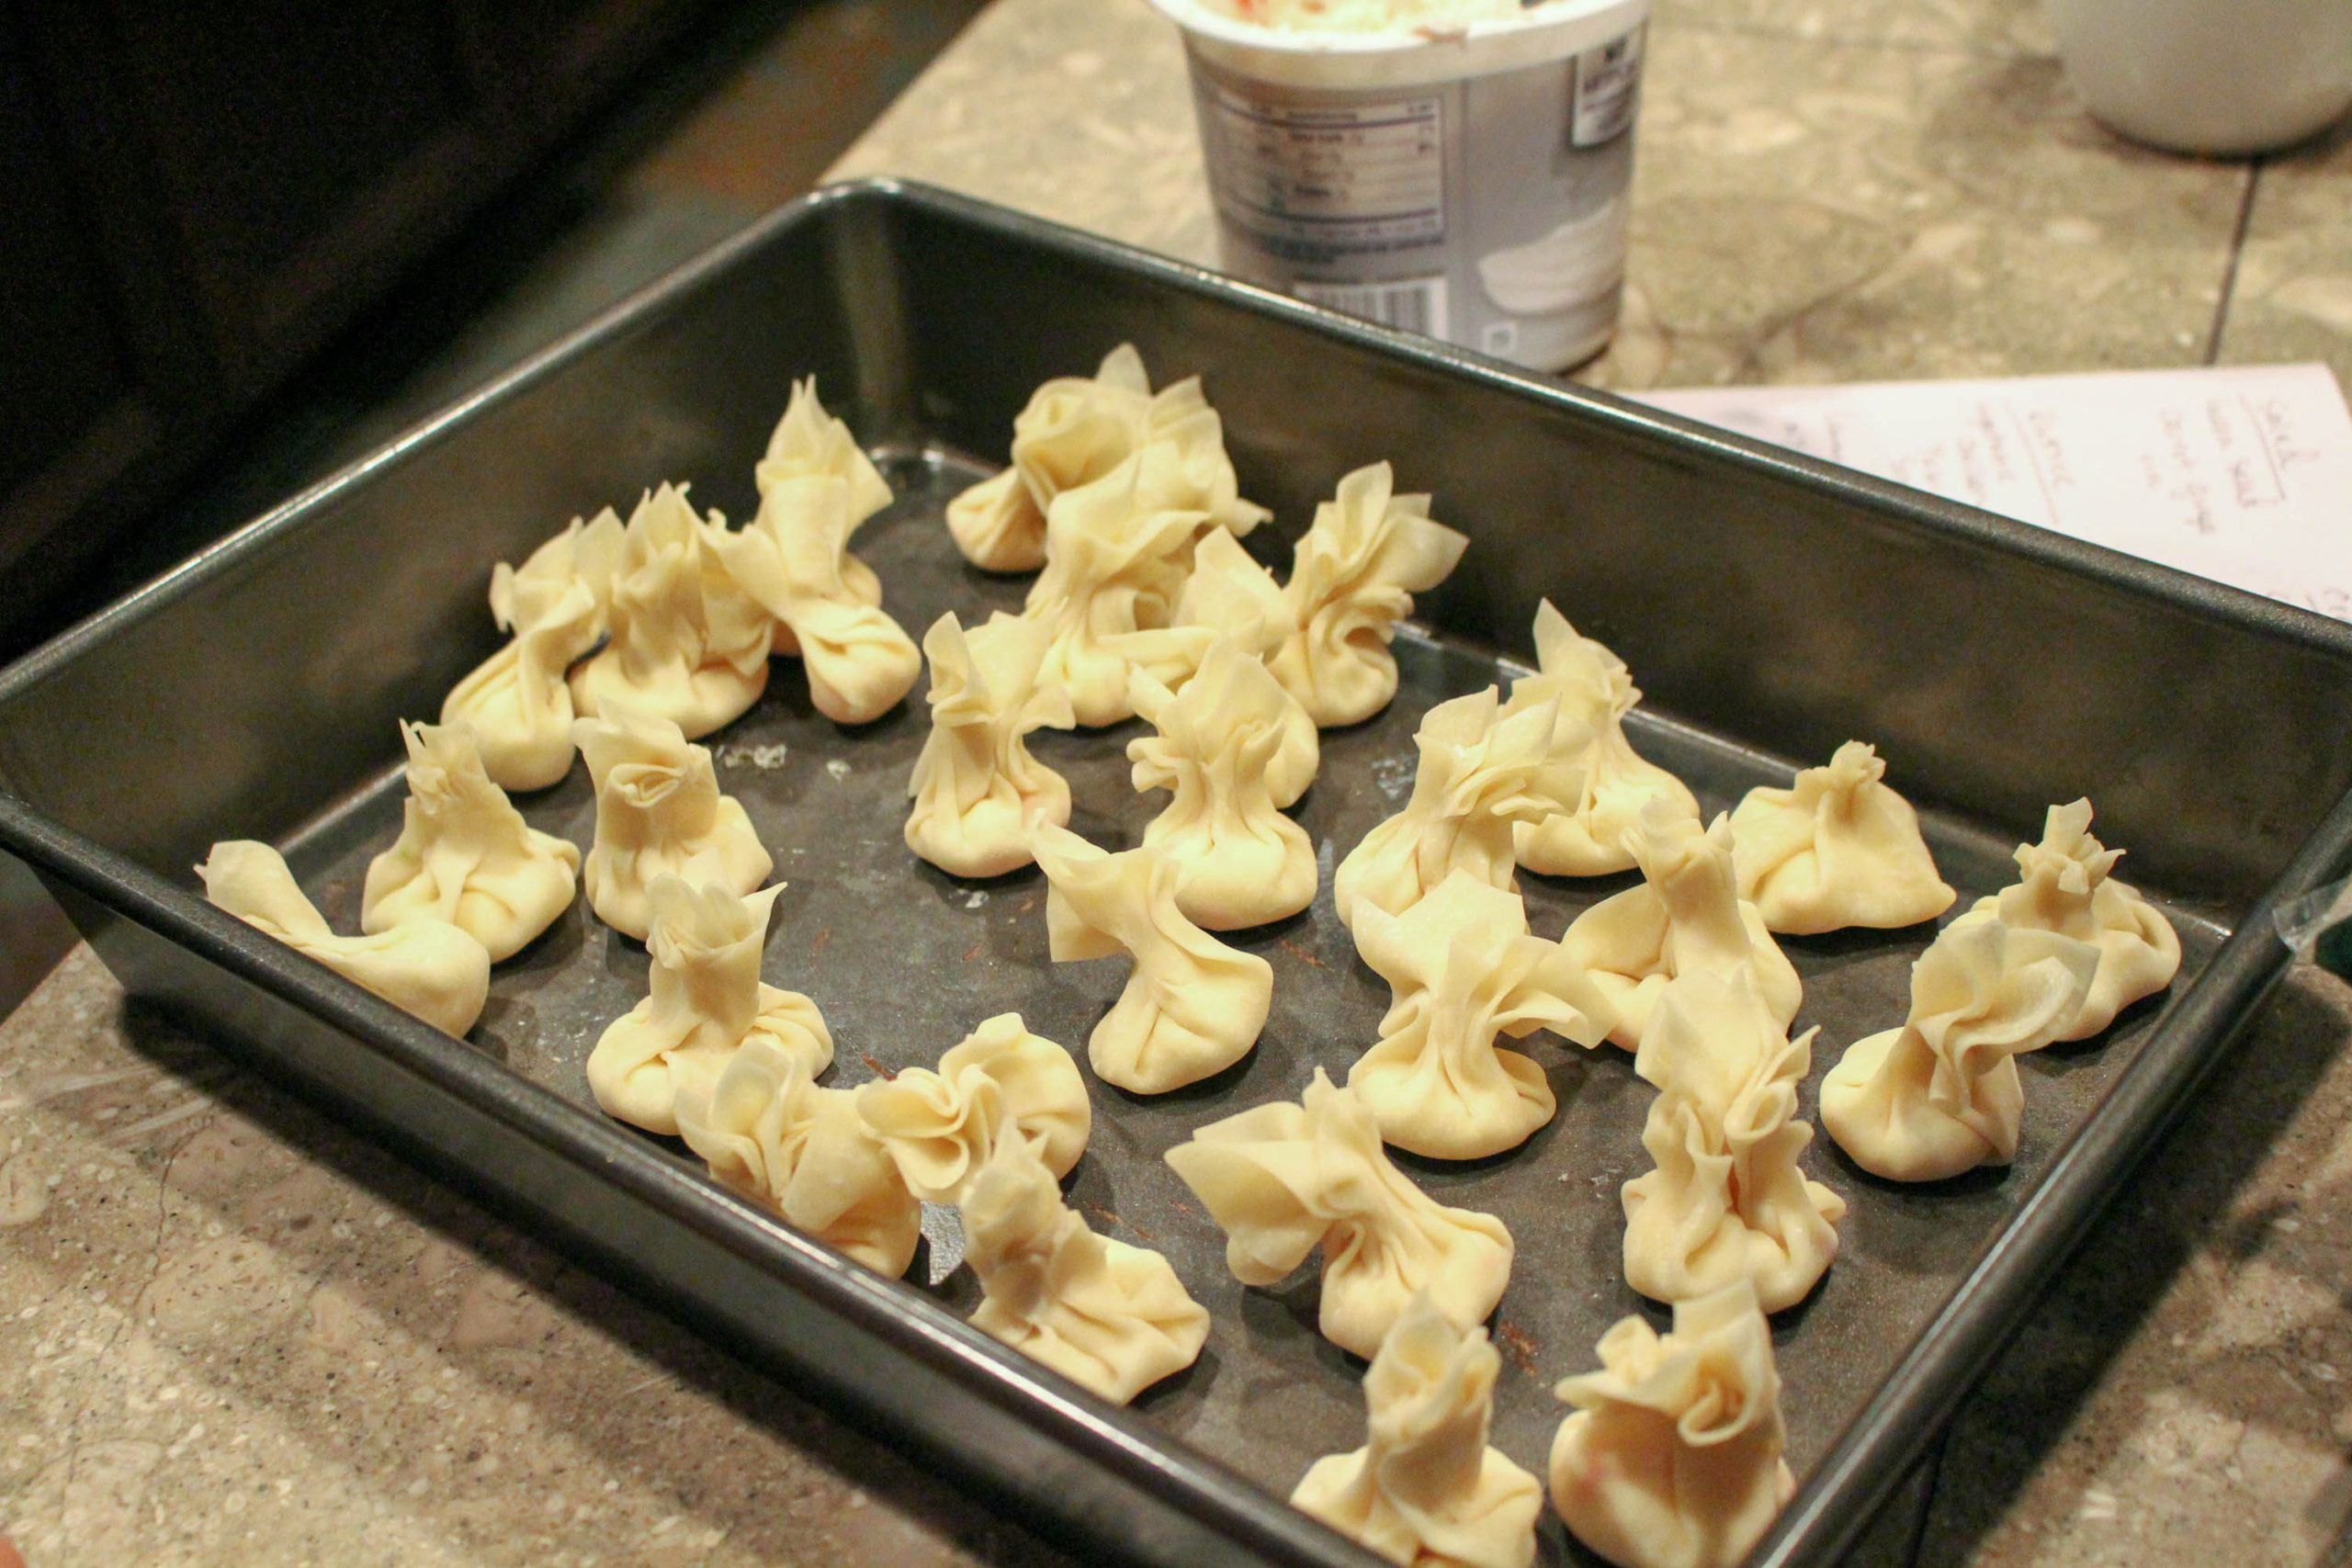 uncooked crab puffs